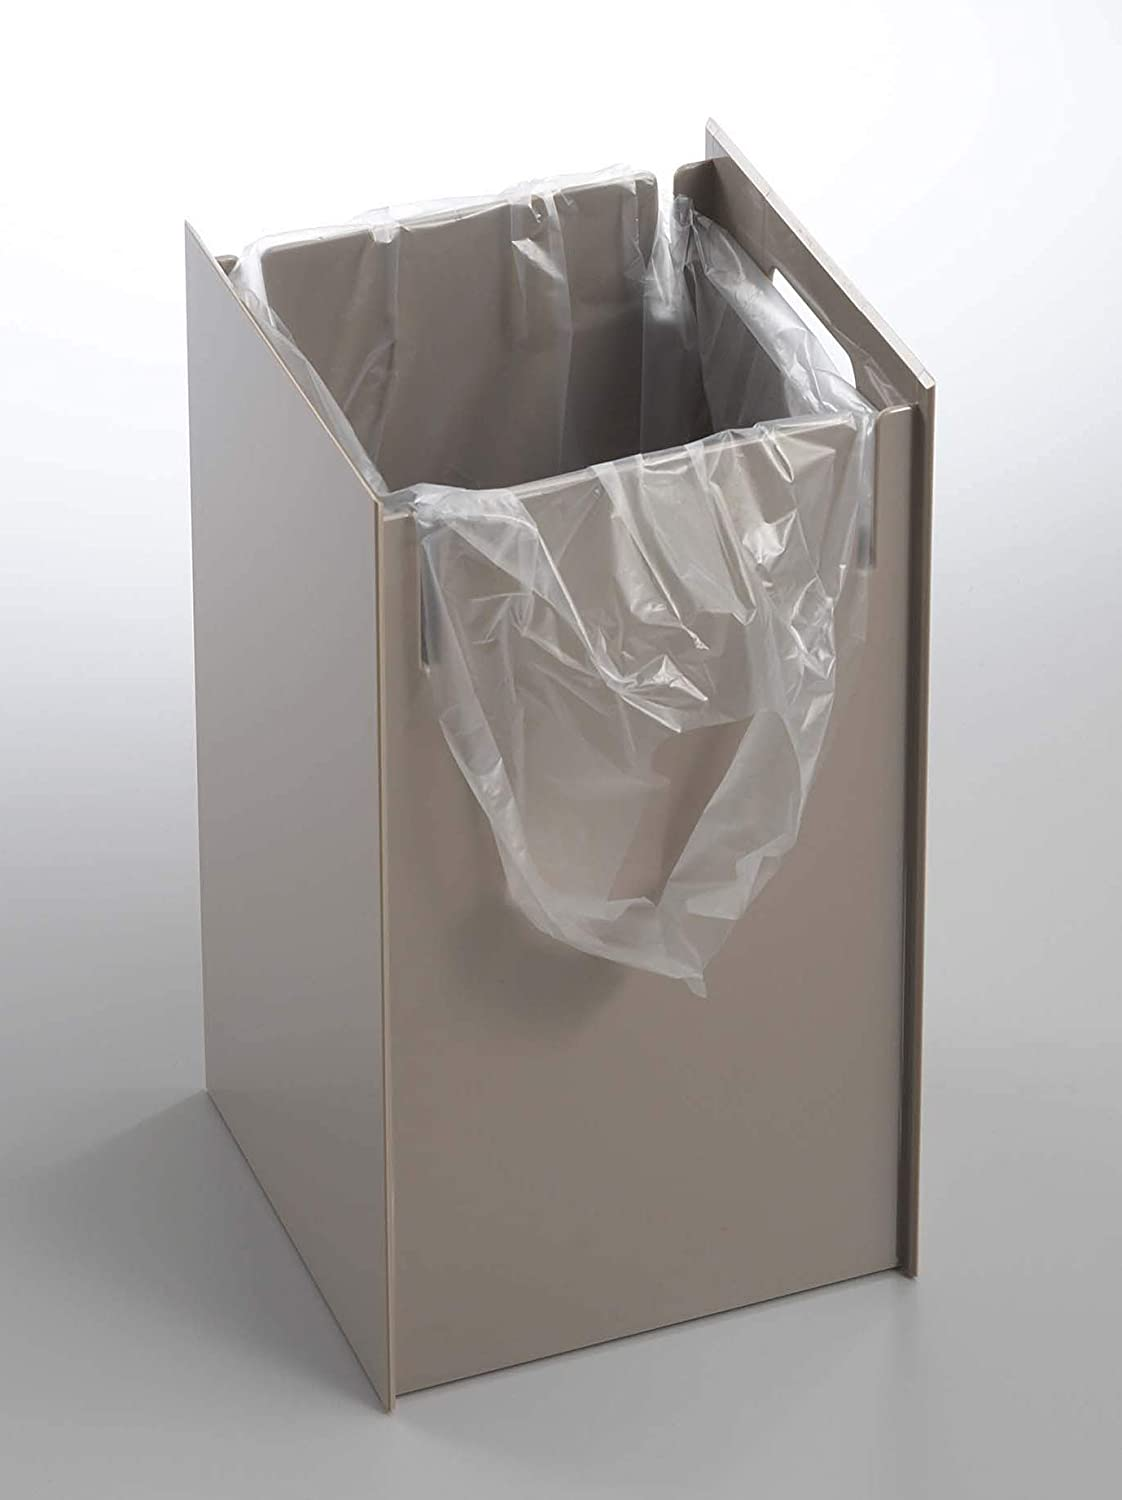 Red Co. Deluxe Veil Minimalist Trash Can, Rubbish Bin Wastebasket Receptacle Garbage Container, for Office Home Bathroom, Brown, 18 Inches 17716-VWD